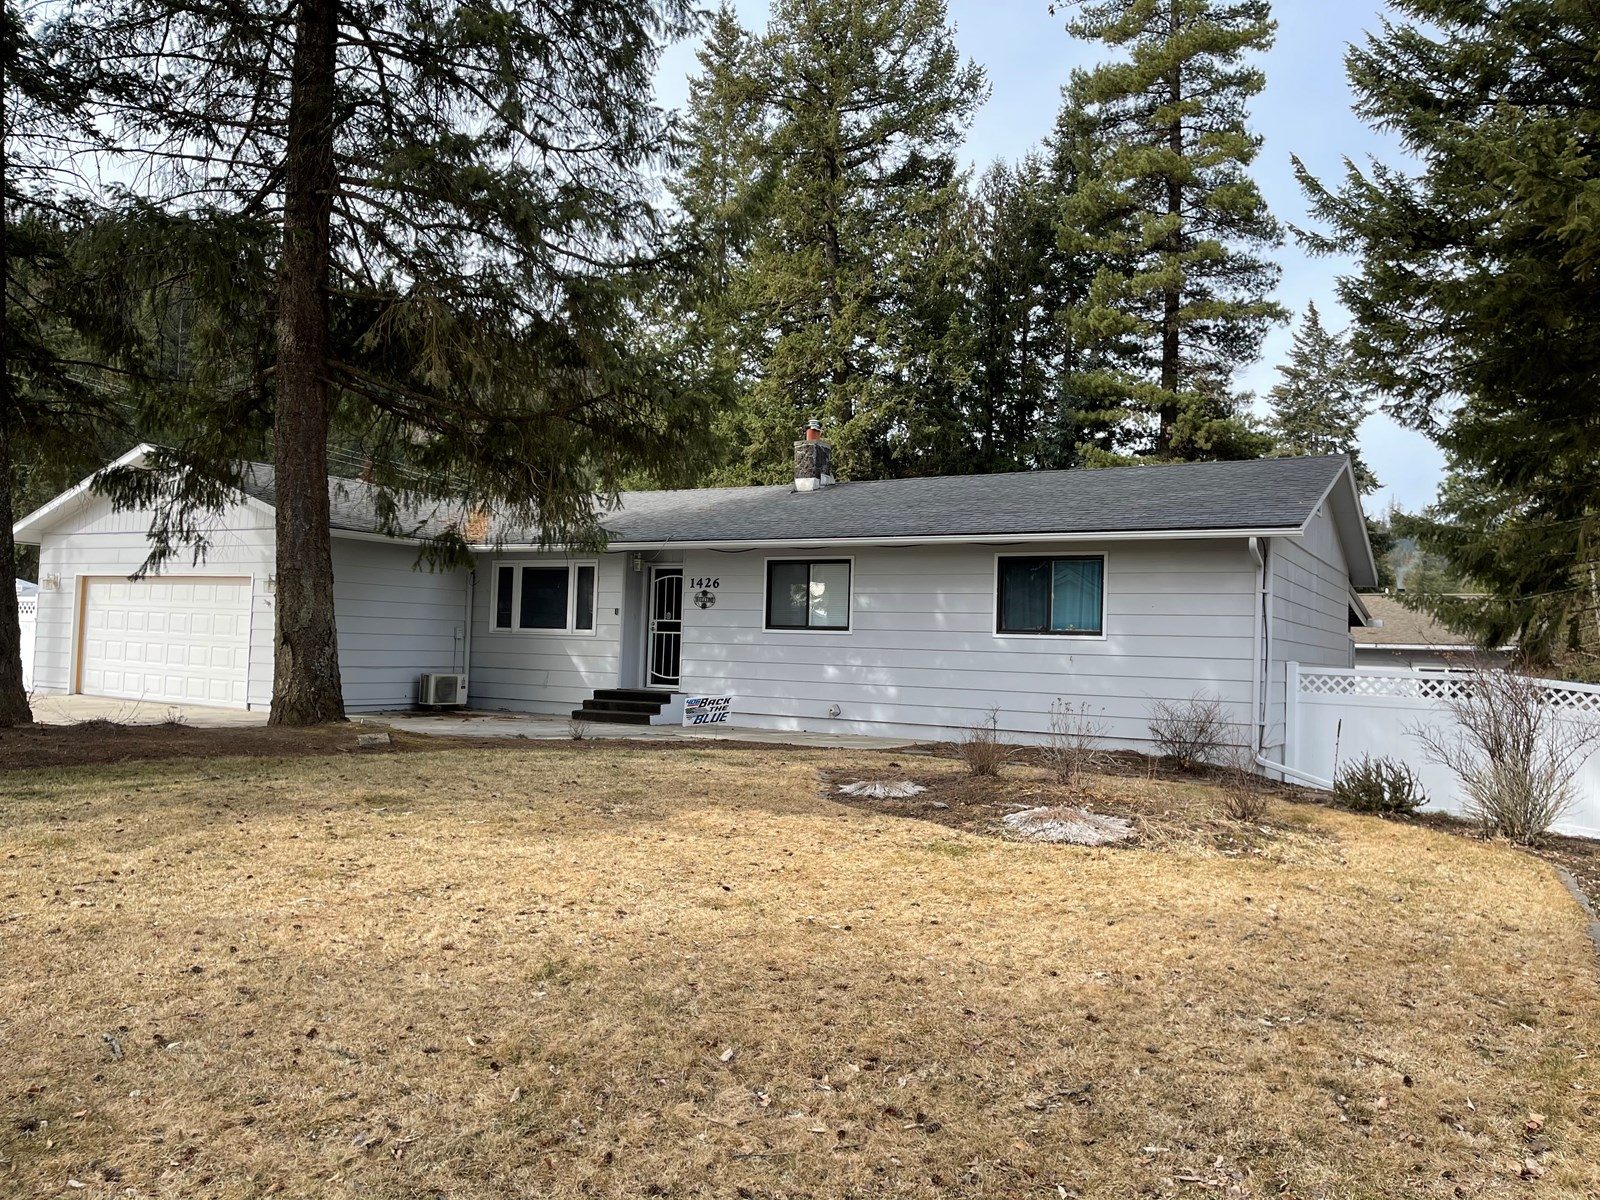 Home in Libby, MT For Sale